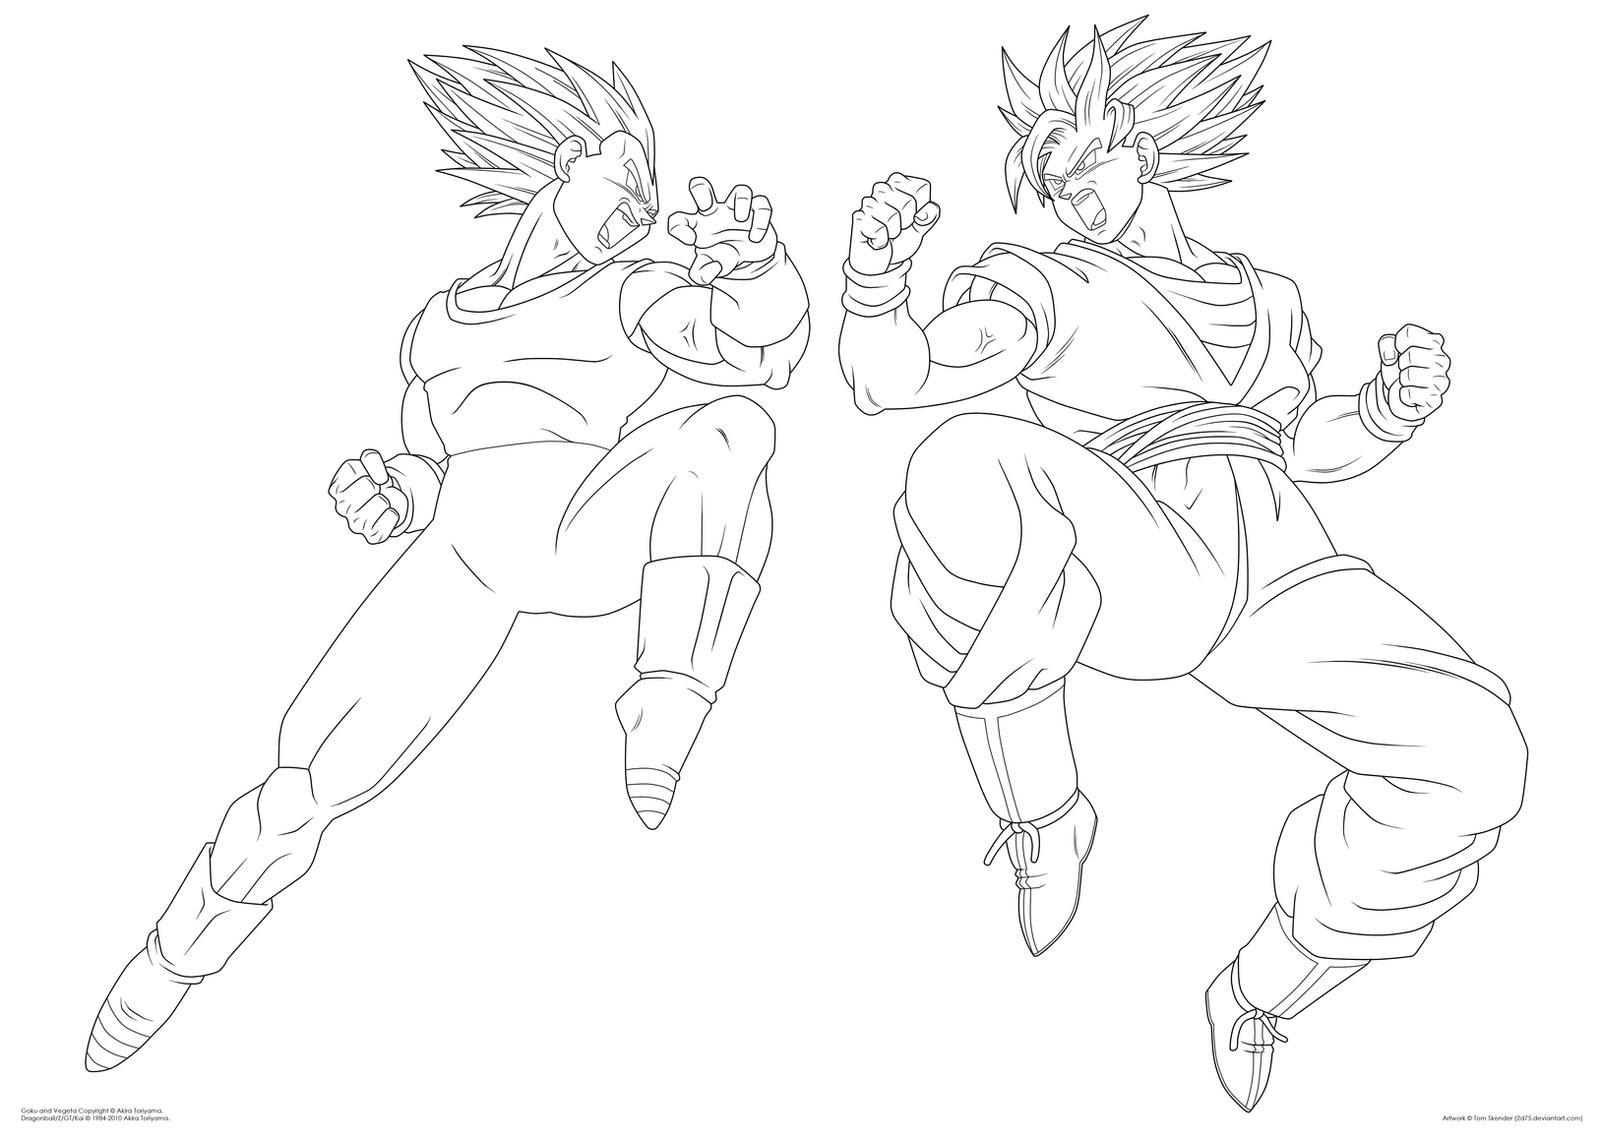 Goku and vegeta lineart by moxie2d on deviantart for Goku and vegeta coloring pages